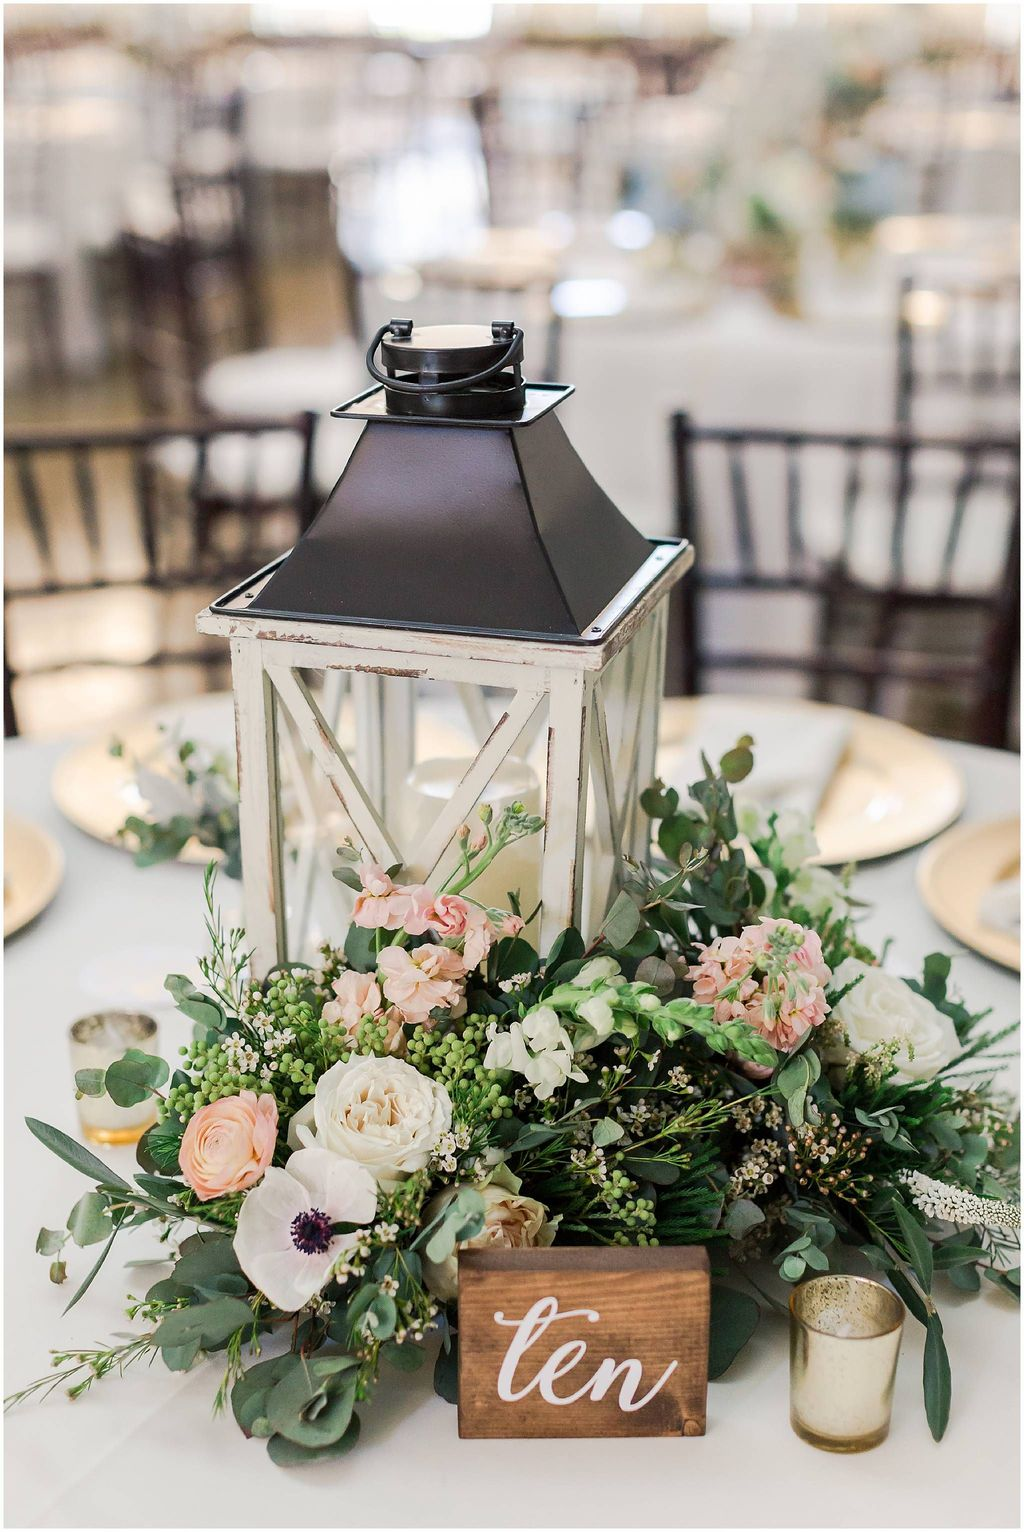 Inspiring Spring Table Centerpieces Best For Dining Room 12